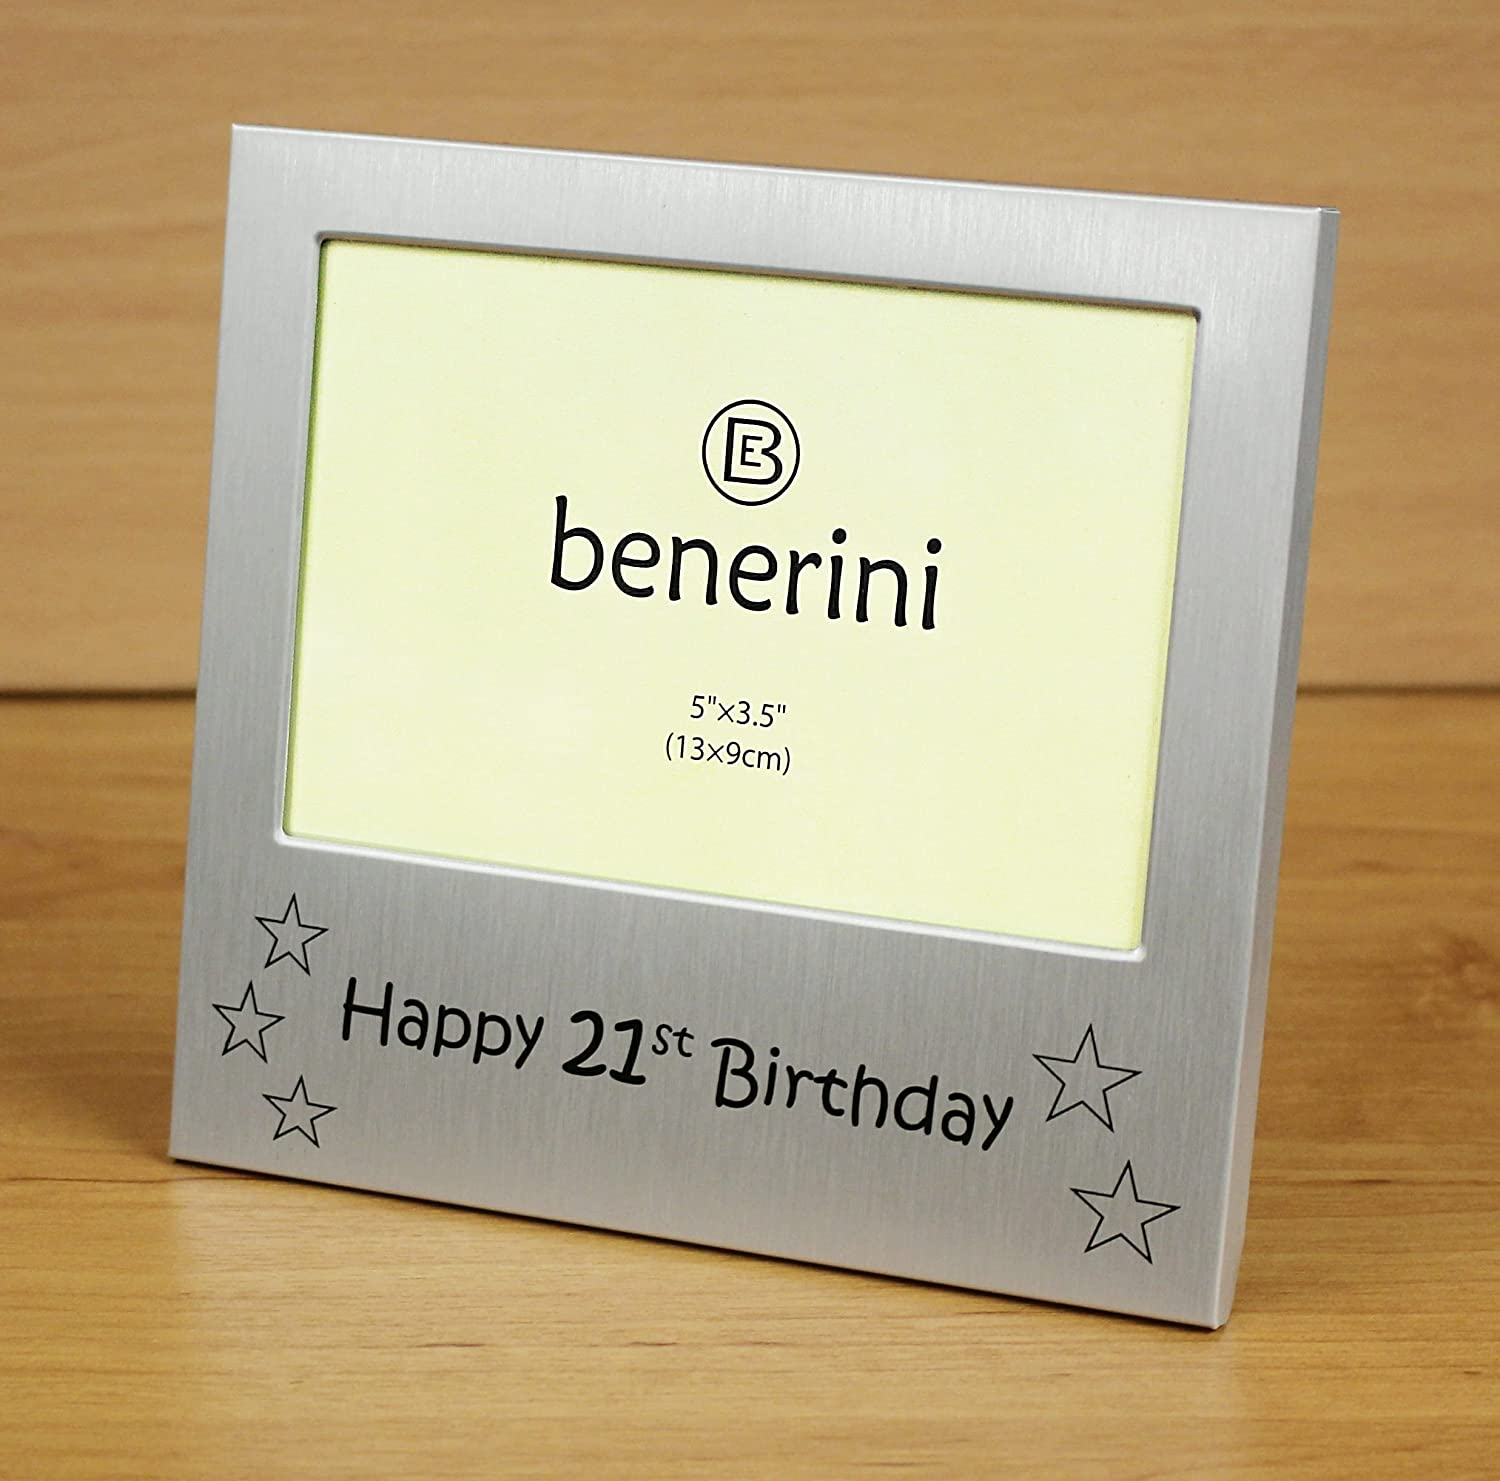 00-CY5FN0-38 13 x 9 cm Photo Size 5 x 3.5 Inches - Brushed Aluminum Satin Silver Color benerini Happy 21st Birthday Photo Frame Gift